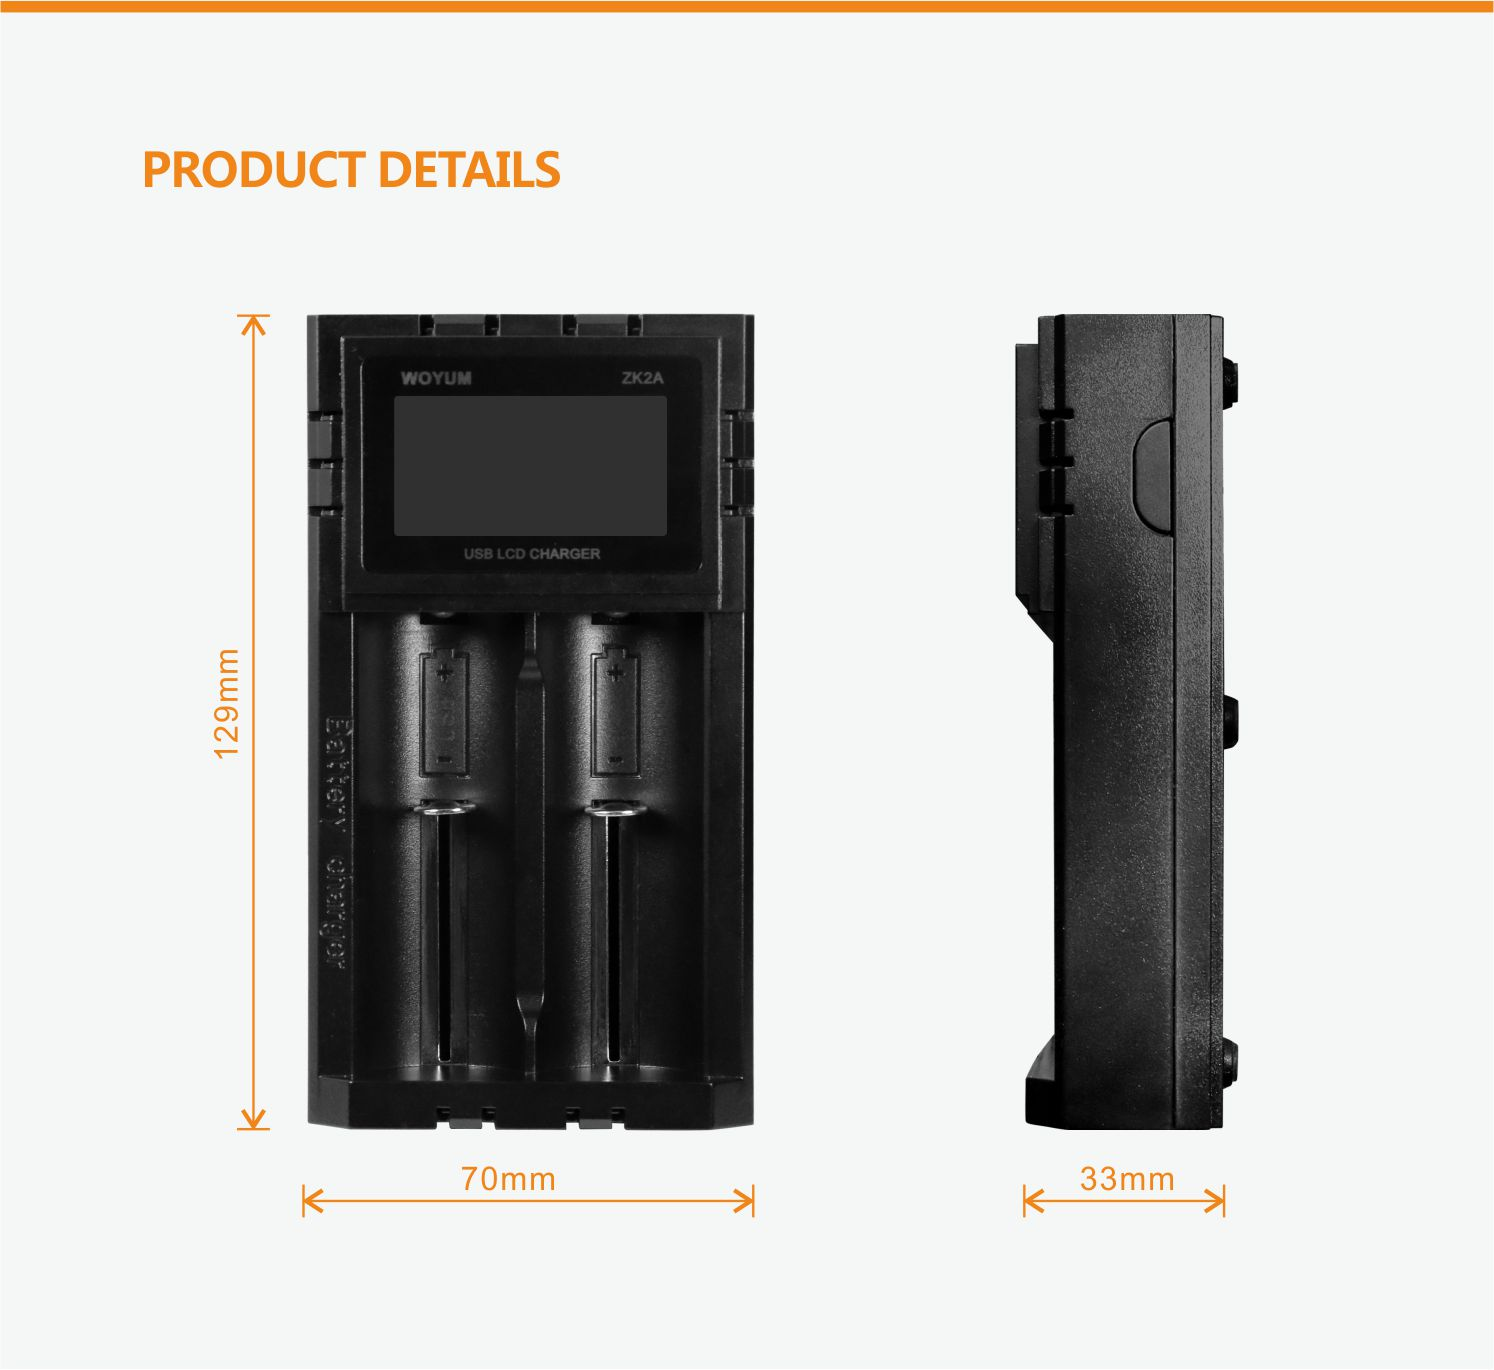 Woyum smart battery charger series for Li-ion-10